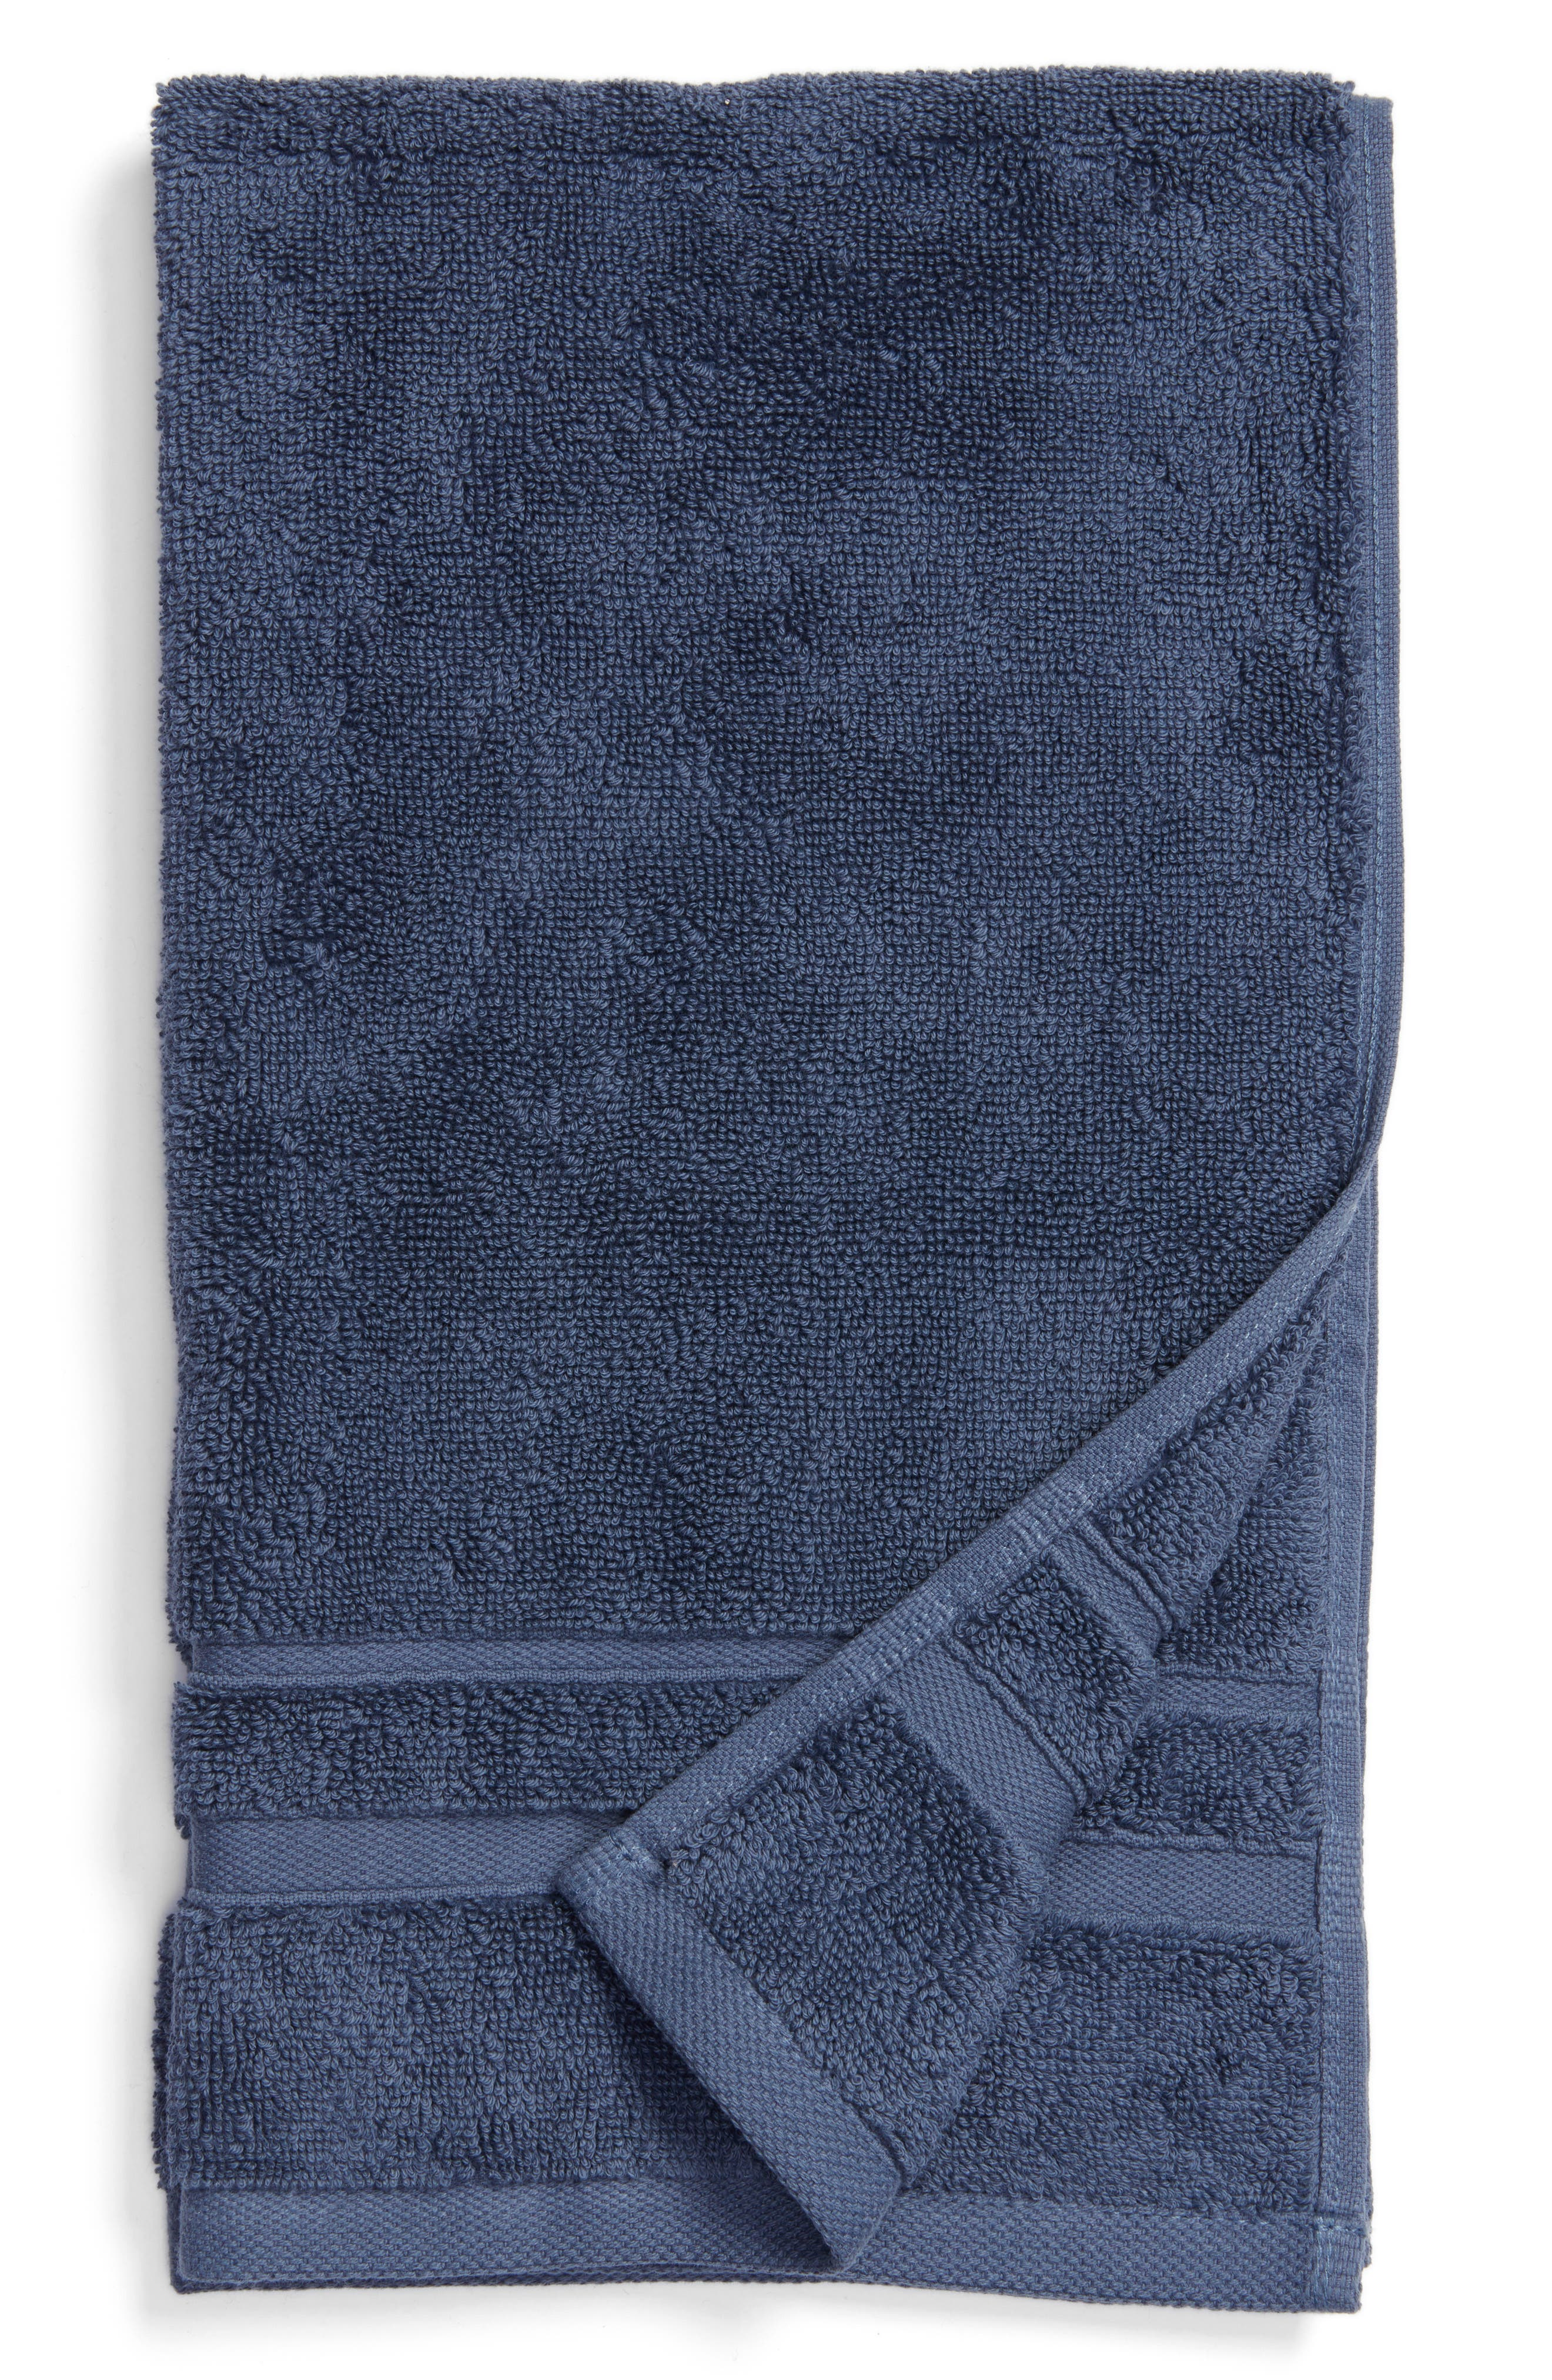 Main Image - Waterworks Studio 'Perennial' Combed Turkish Cotton Hand Towel (Online Only)